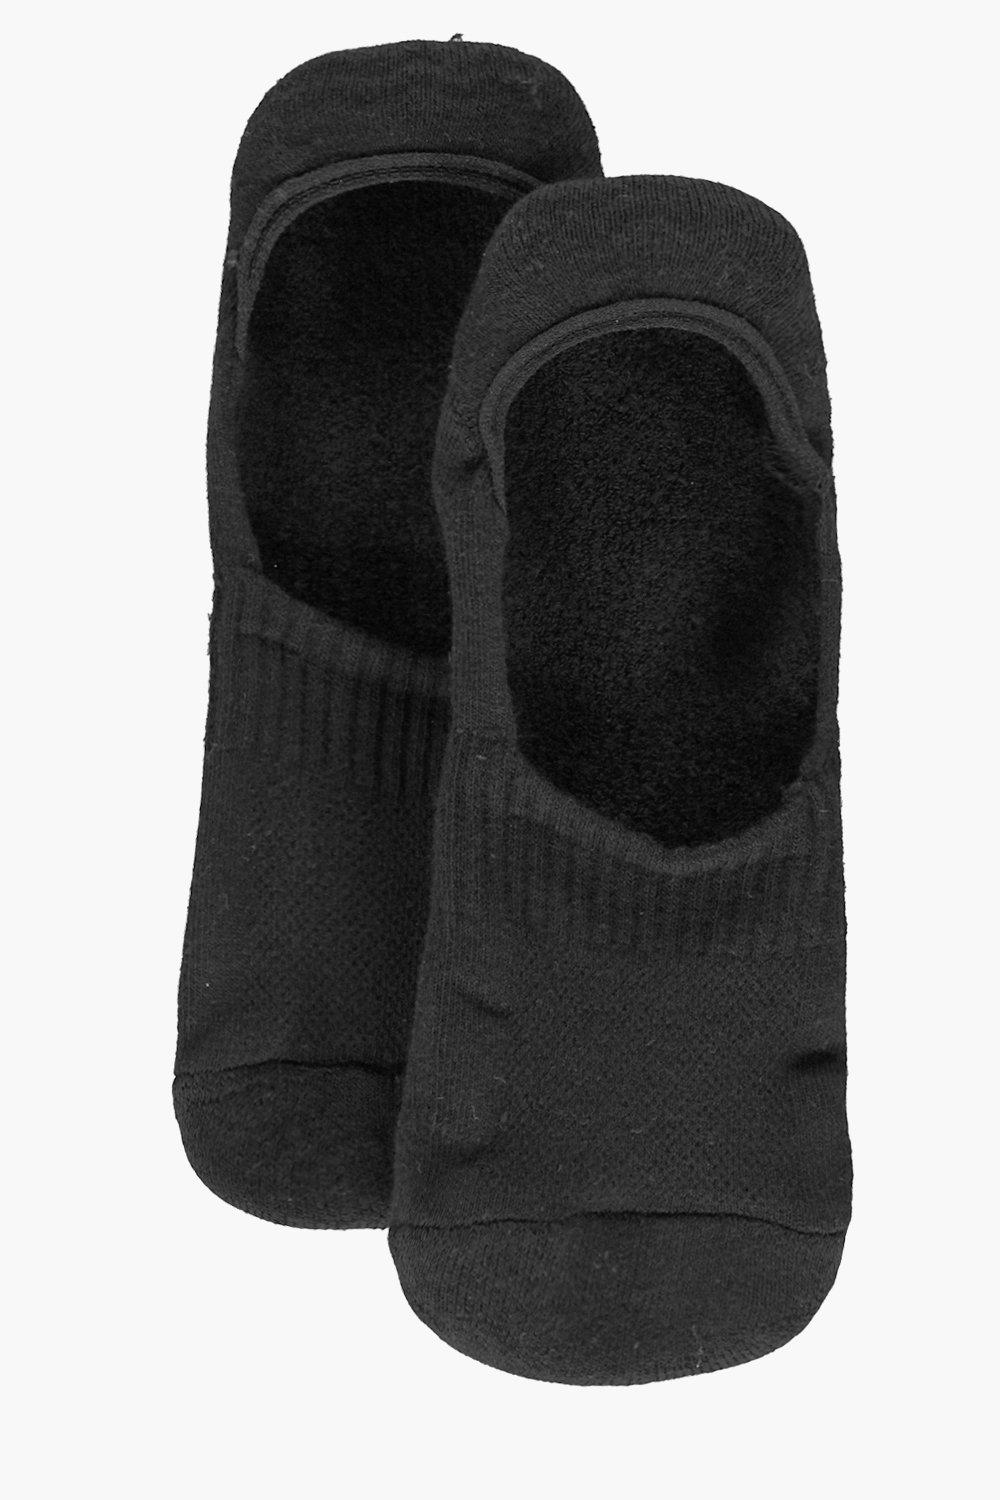 2 Pack Plain Invisible Socks With Grips